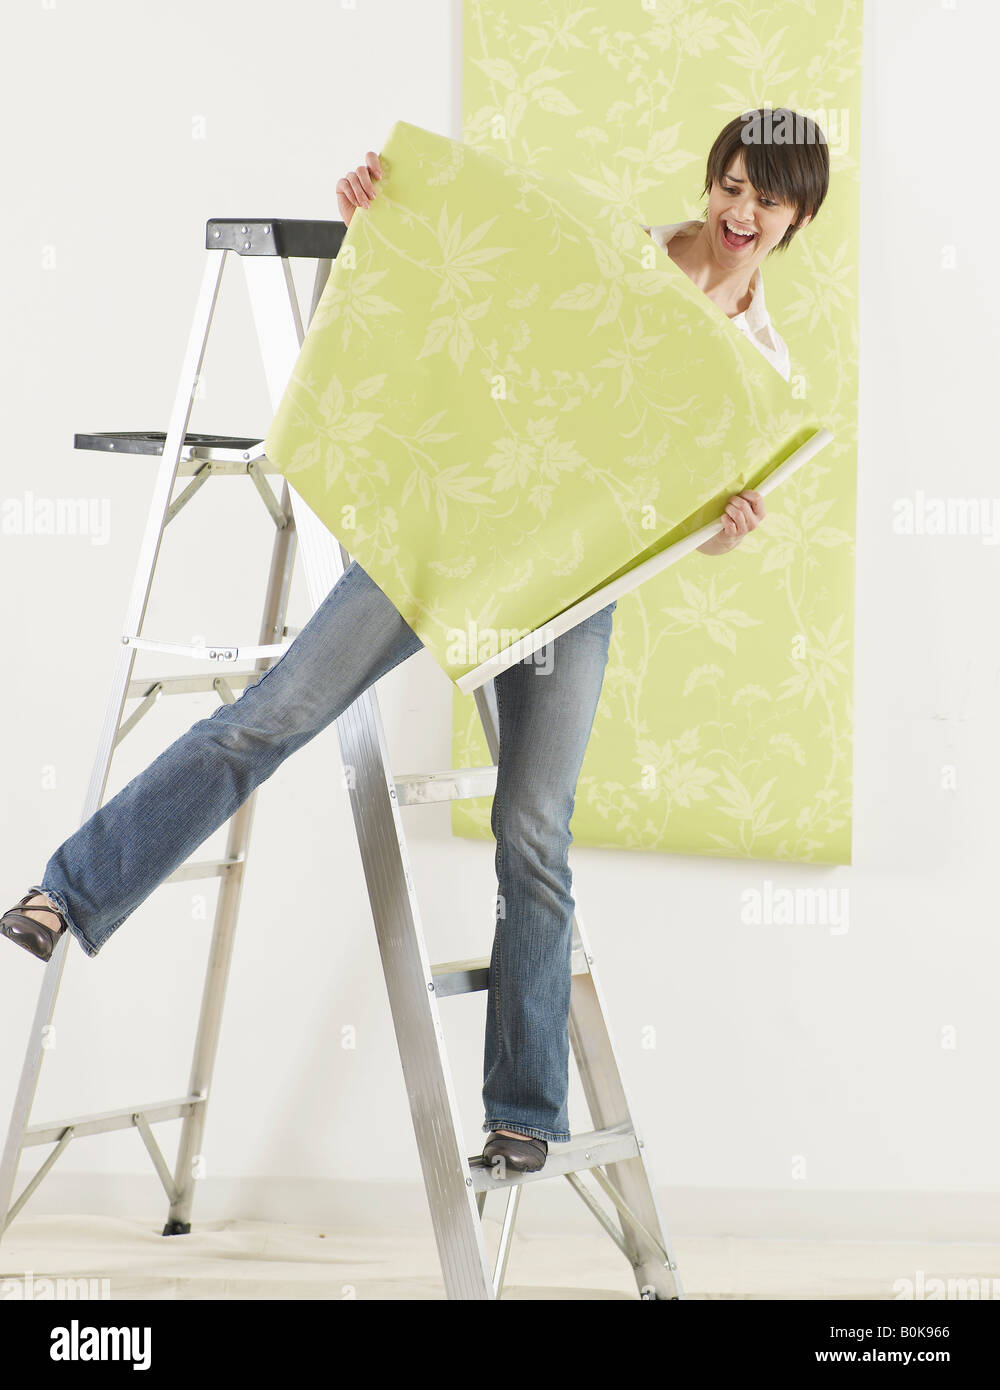 Young Woman Balancing on Stepladder and Holding Wallpaper Stock Photo